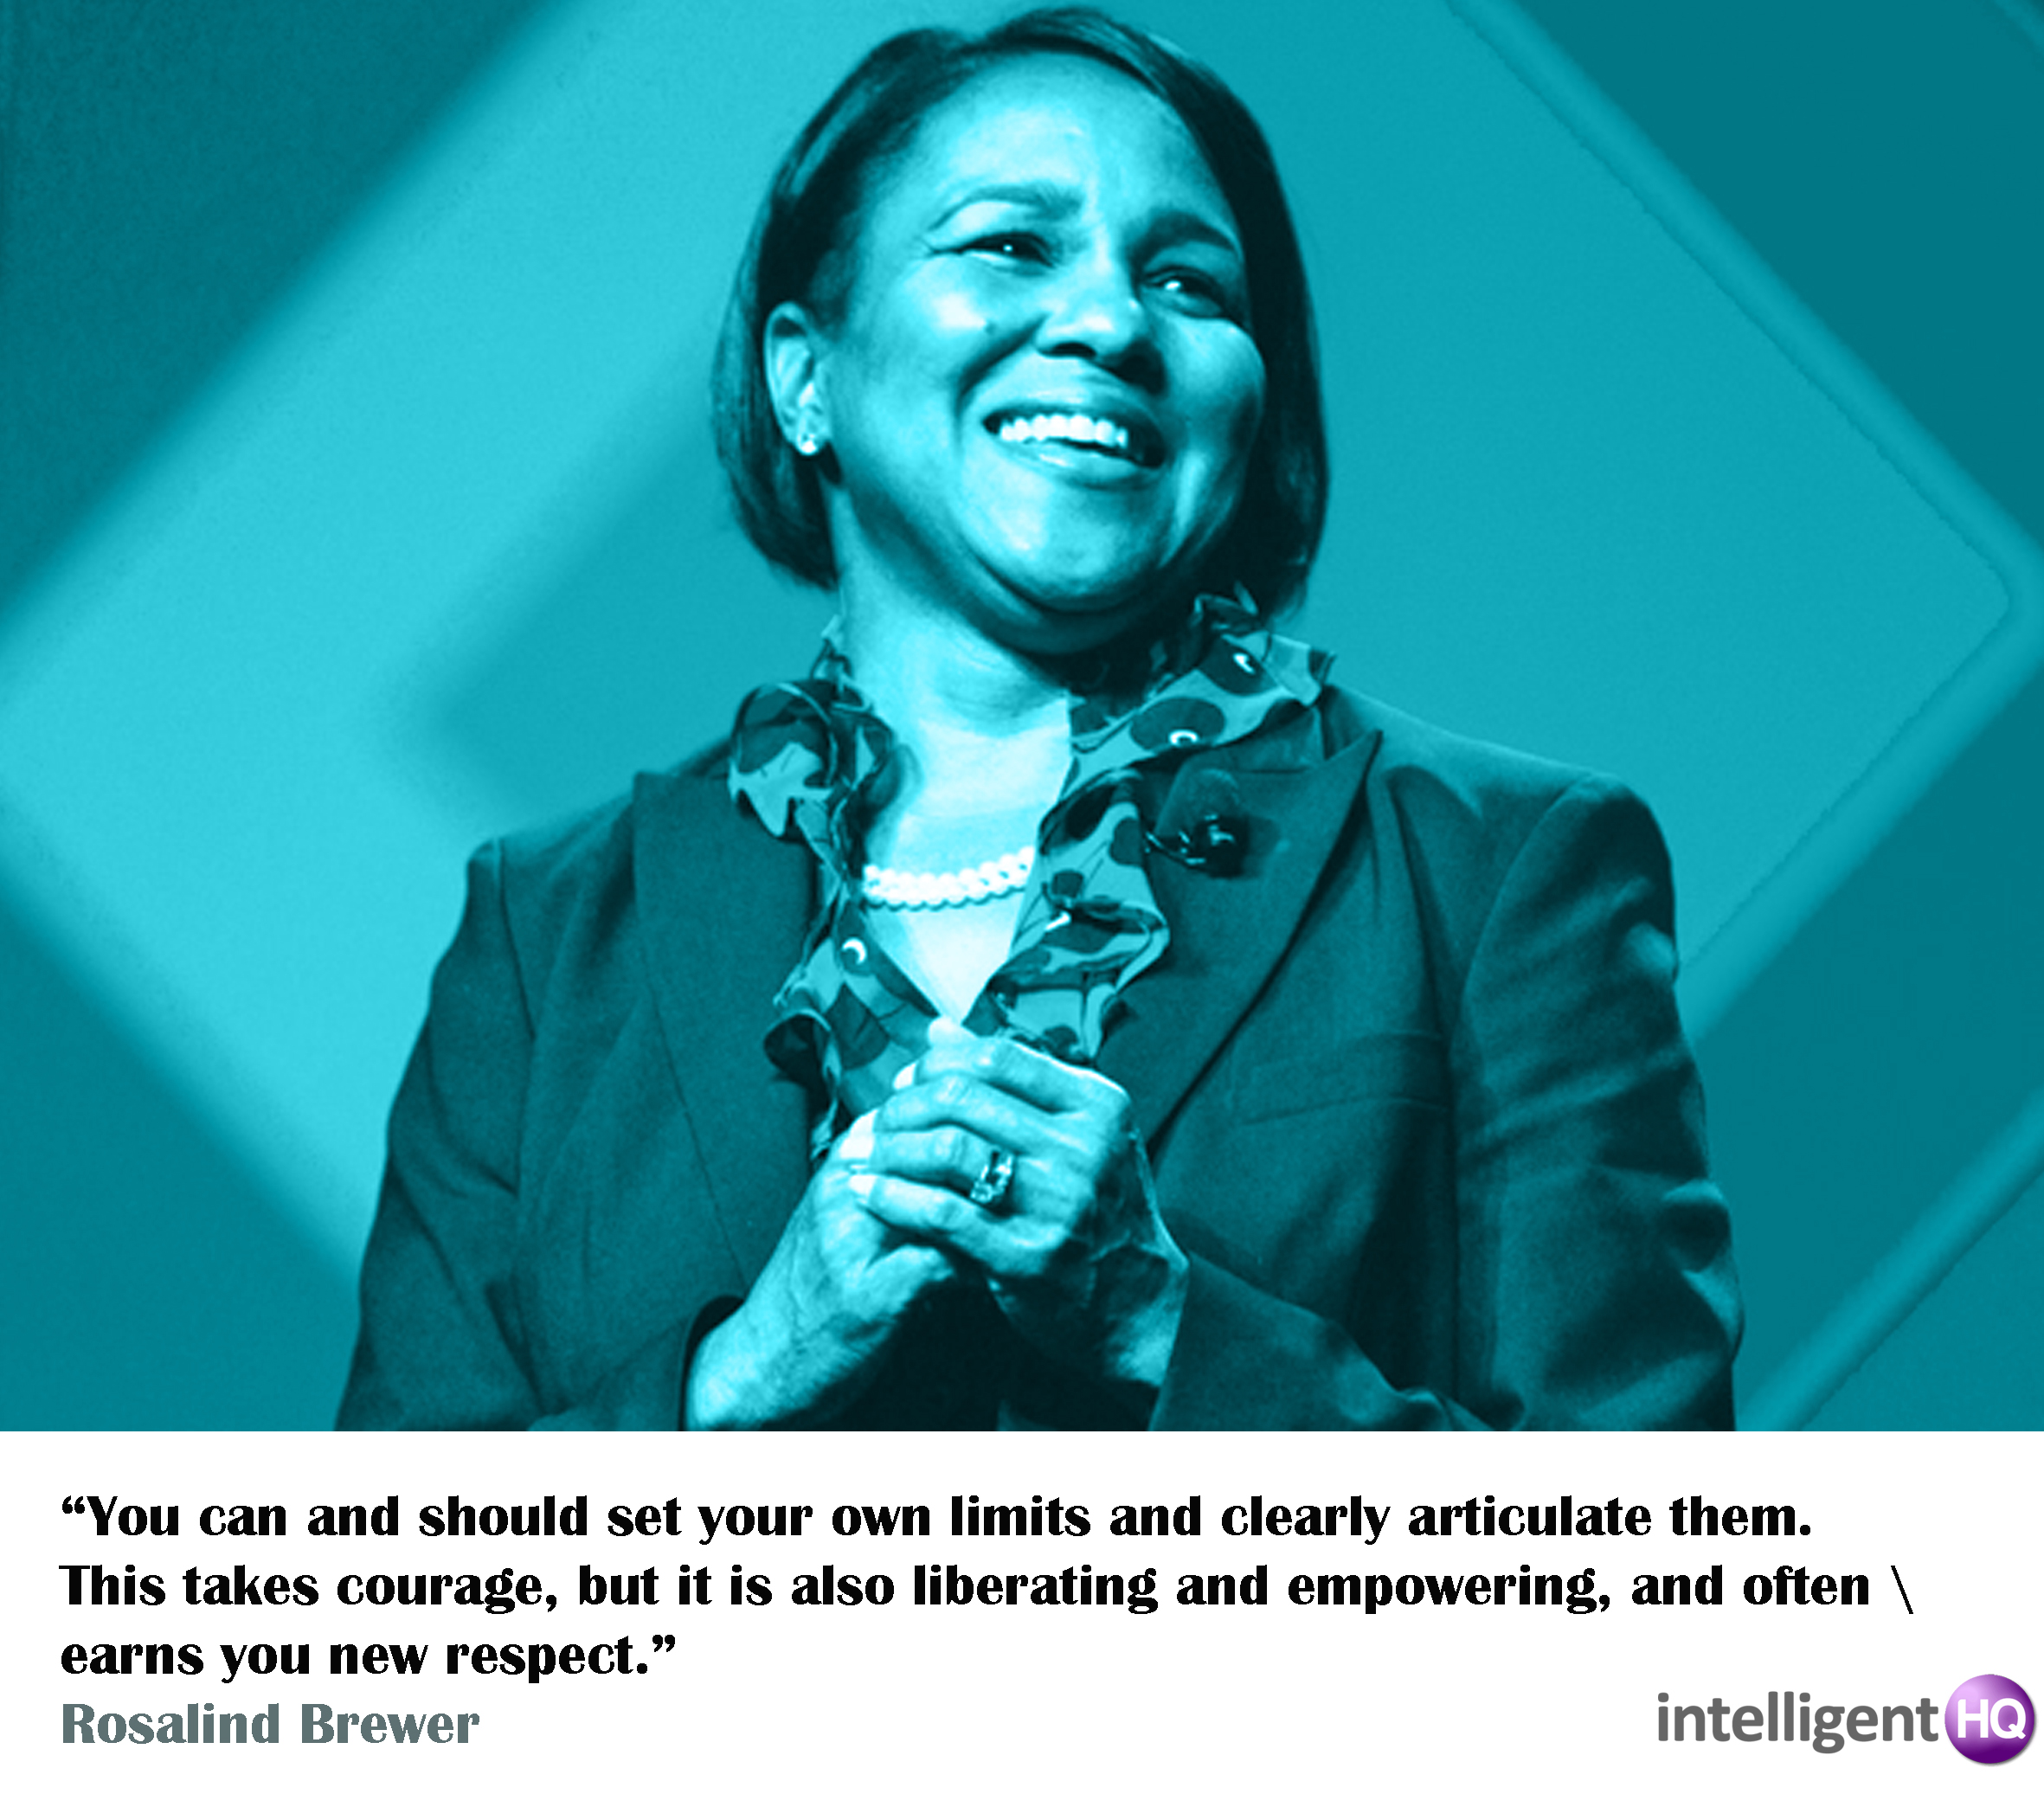 Quote By Rosalind Brewer. Intelligenthq